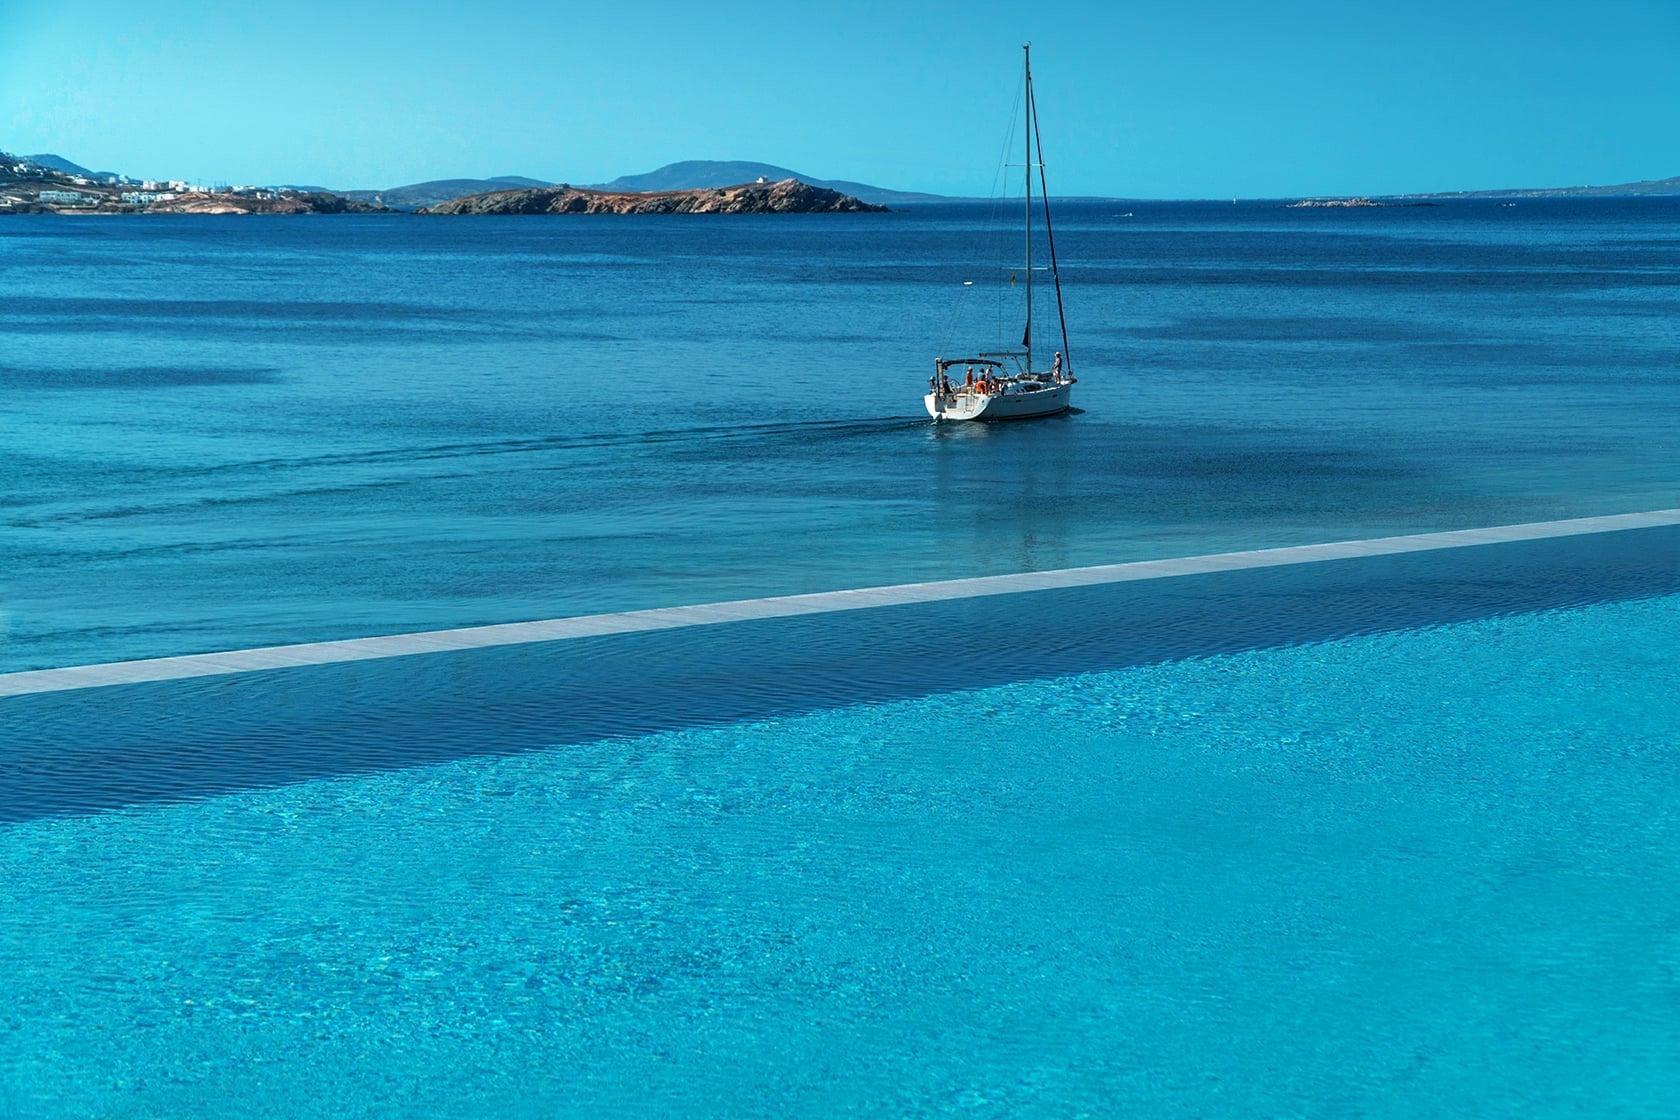 The infinity crystal clear pool at Mykonos Riviera overlooking the Aegean sea.